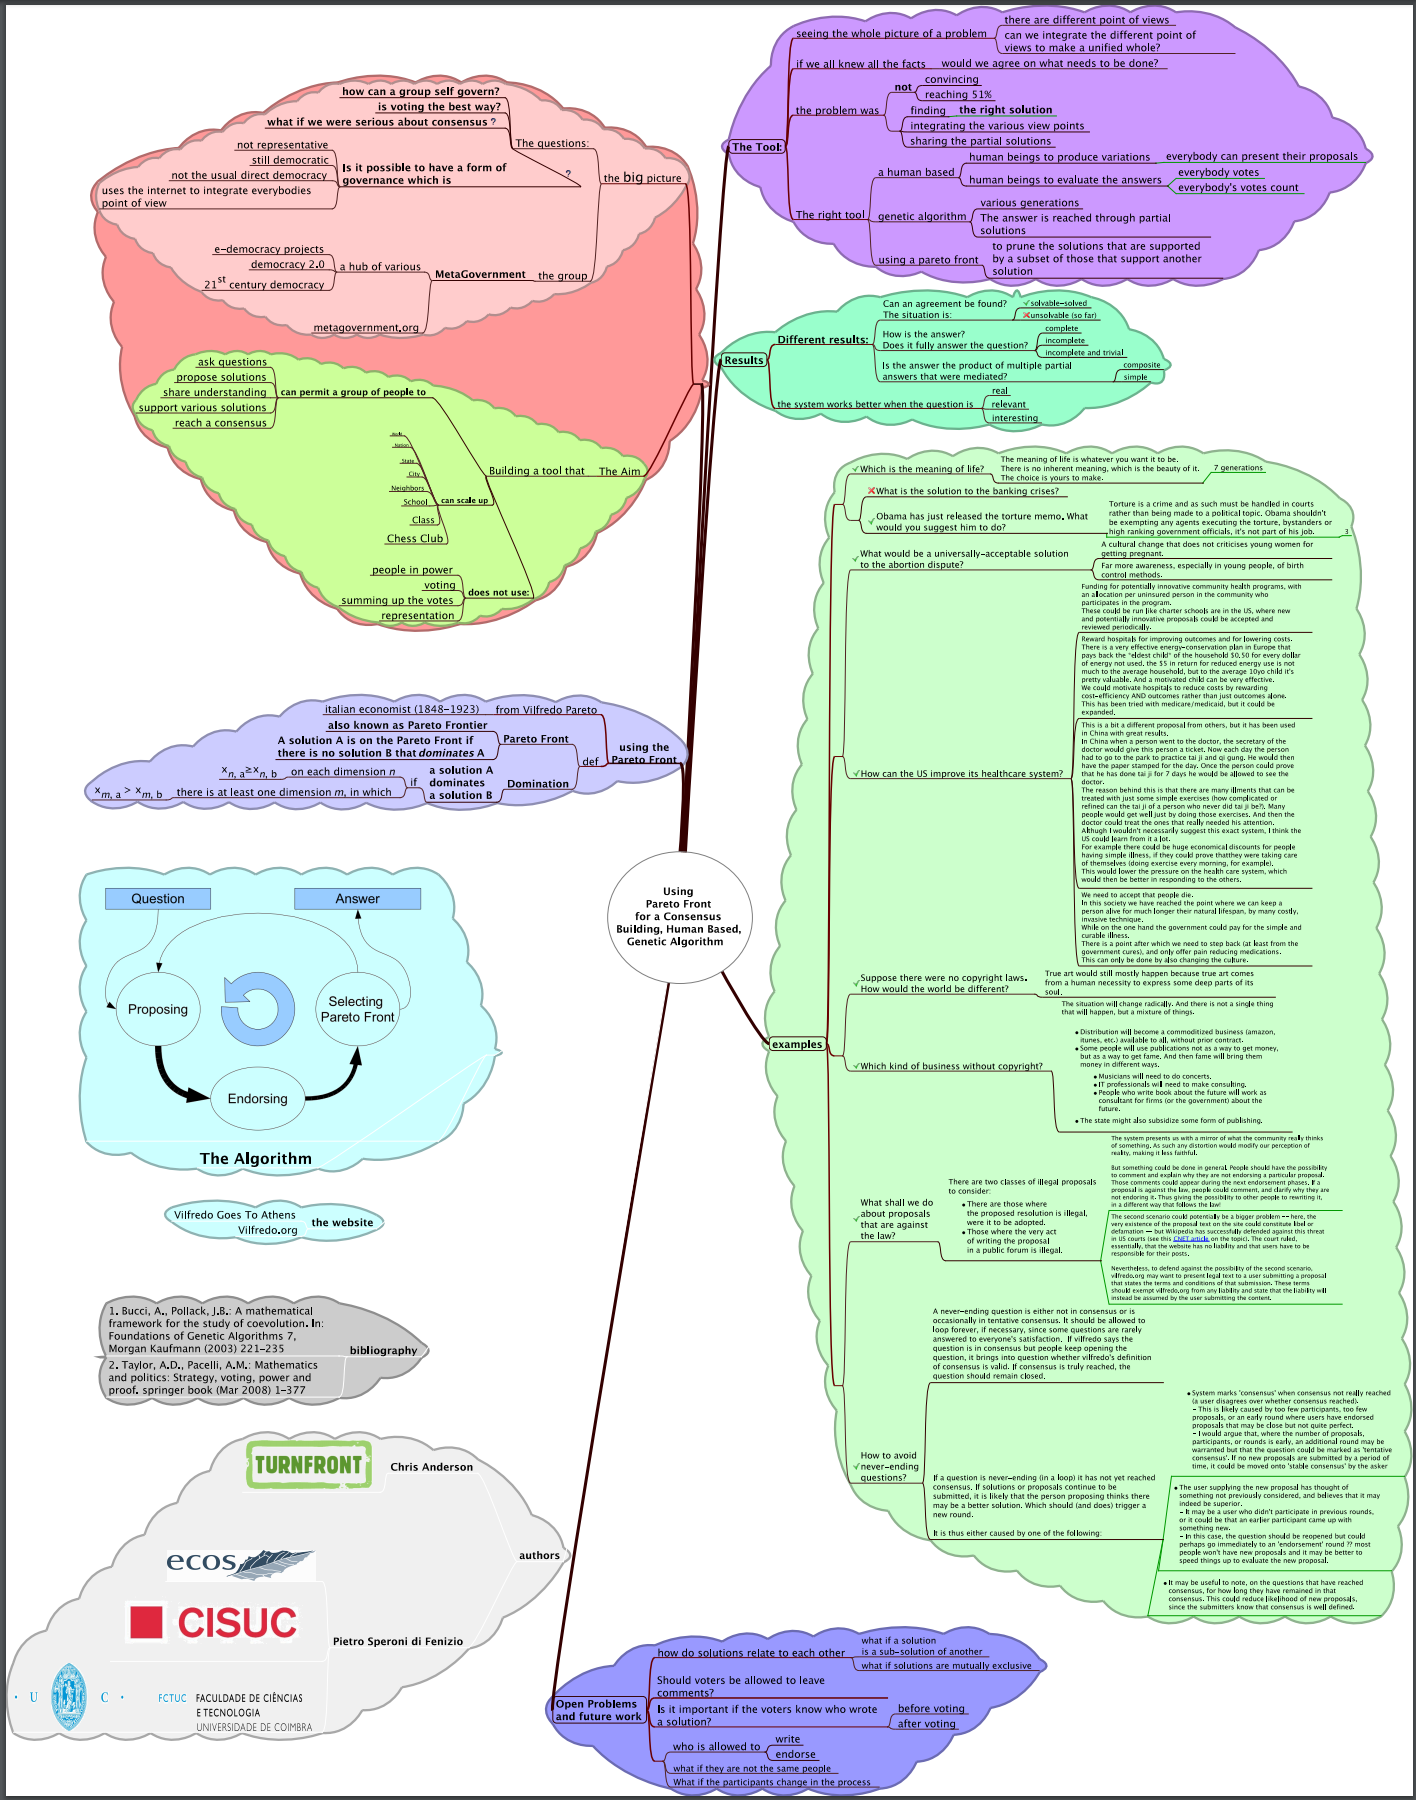 Poster: Using Pareto Front for a Consensus Building, Human Based, Genetic Algorithm